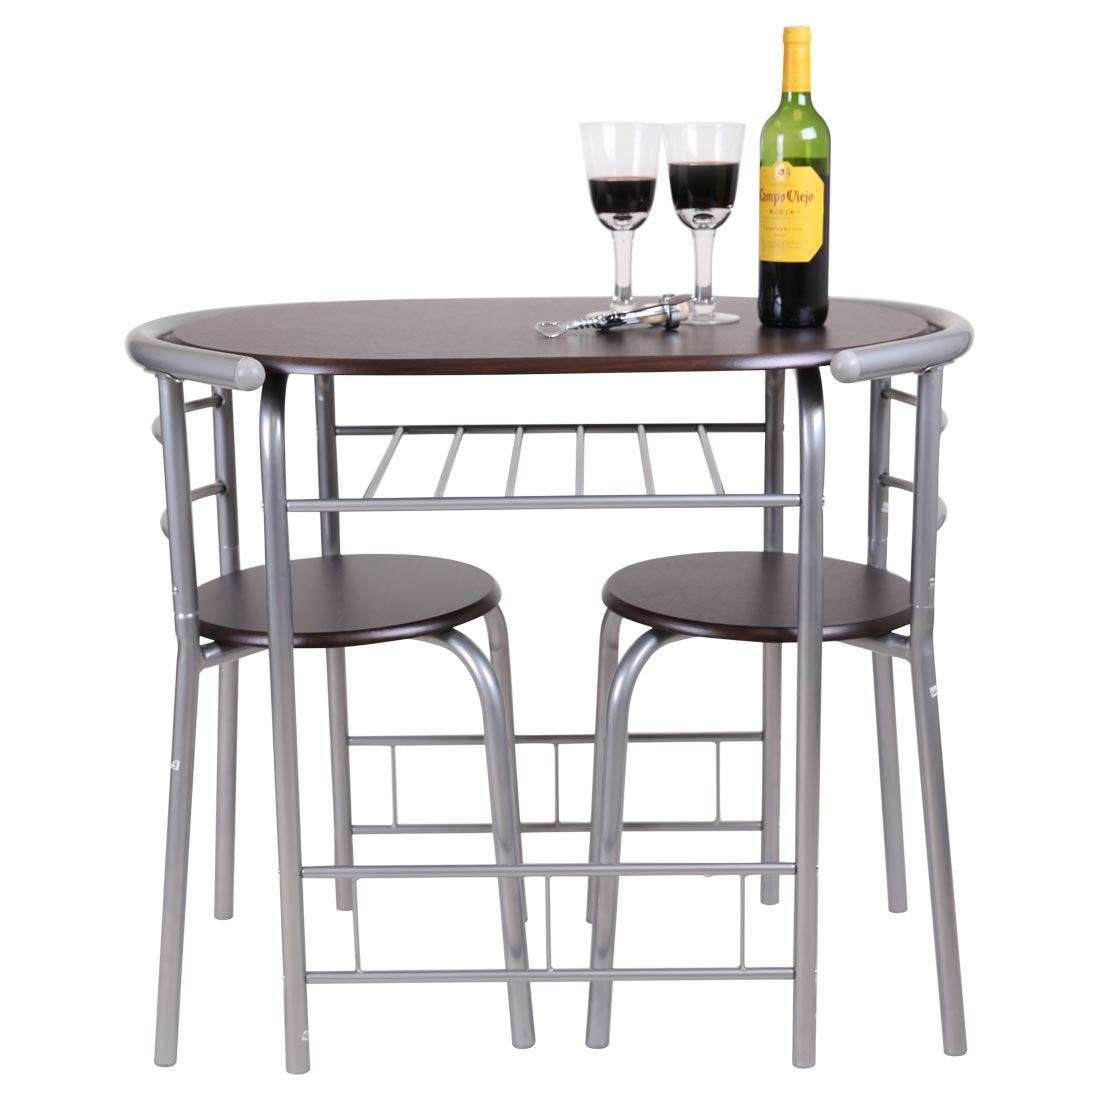 bistro table and chairs cowhide dining room chair covers. Black Bedroom Furniture Sets. Home Design Ideas